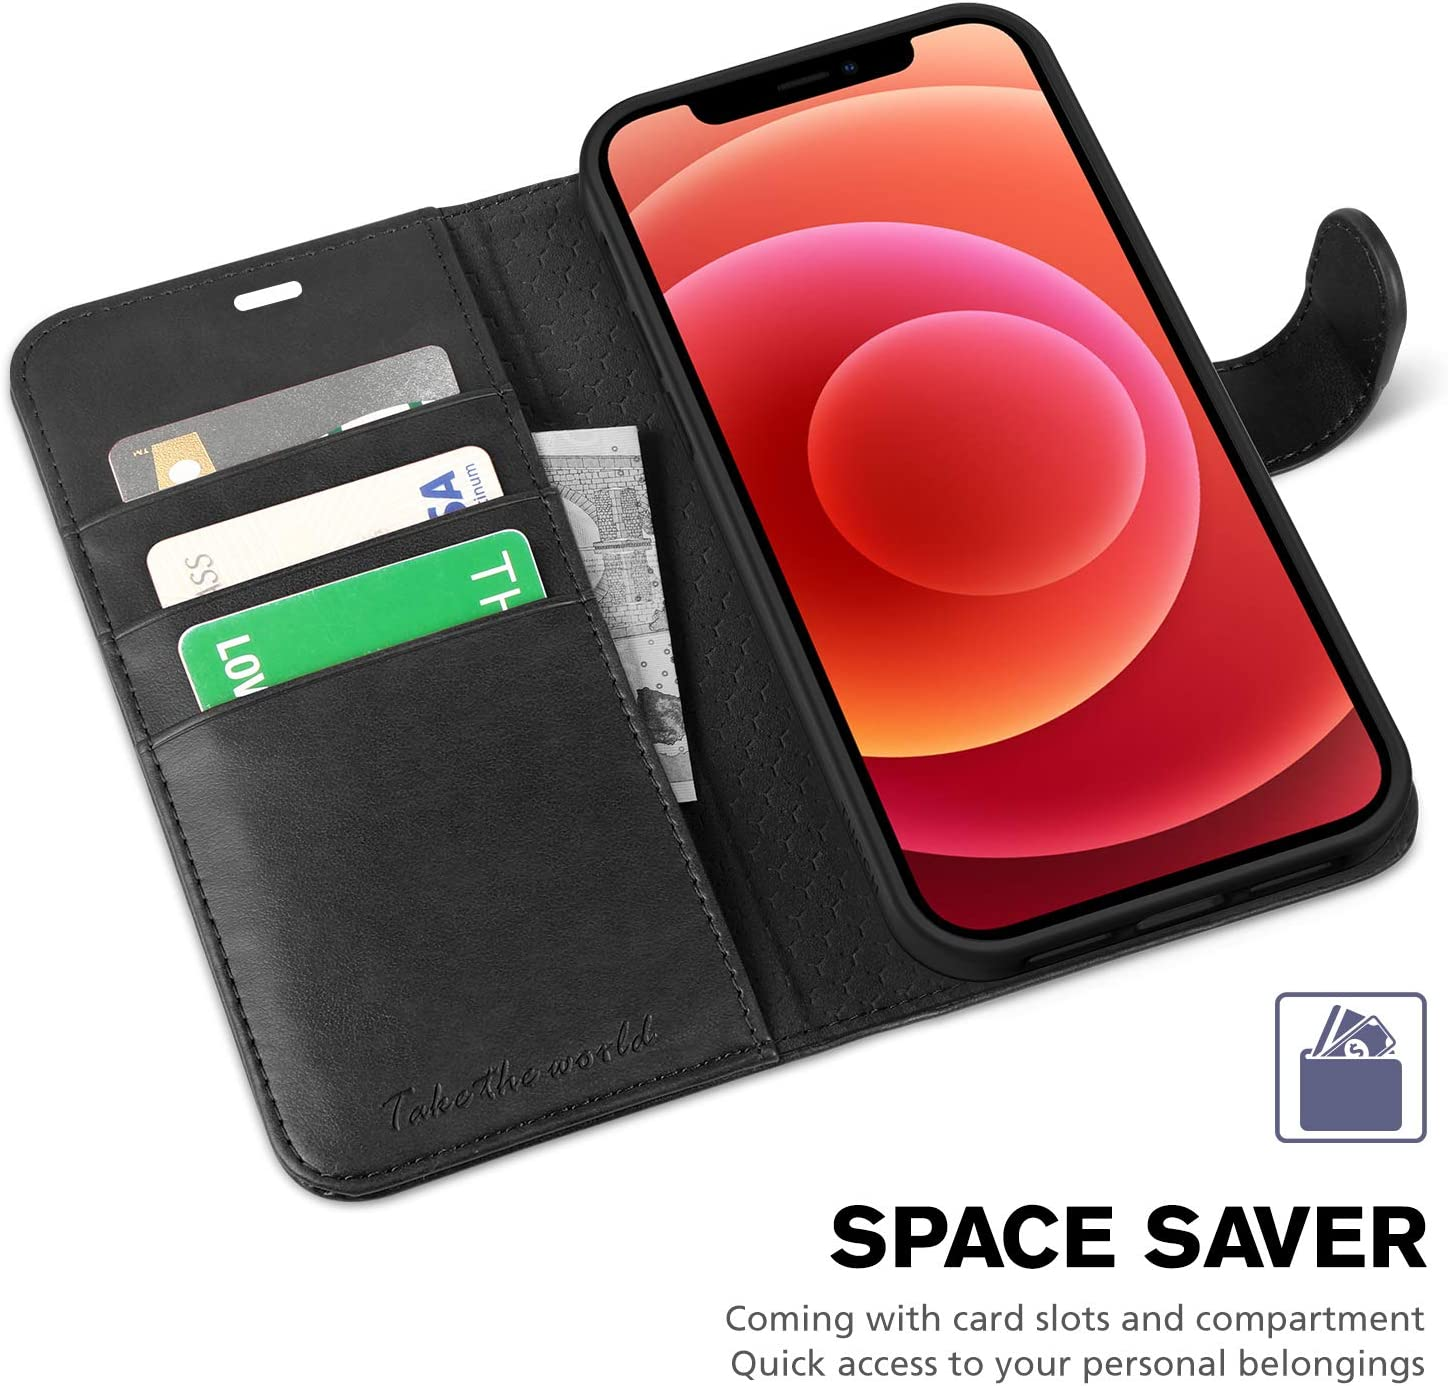 Credit Card Holder TUCCH iPhone 12 Pro Case Magnetic Closure RFID Blocking Stand TPU Shockproof Folio Flip Cover Compatible with iPhone 12//12 Pro 5G iPhone 12 Wallet Case 6.1 2020 - Lake Blue